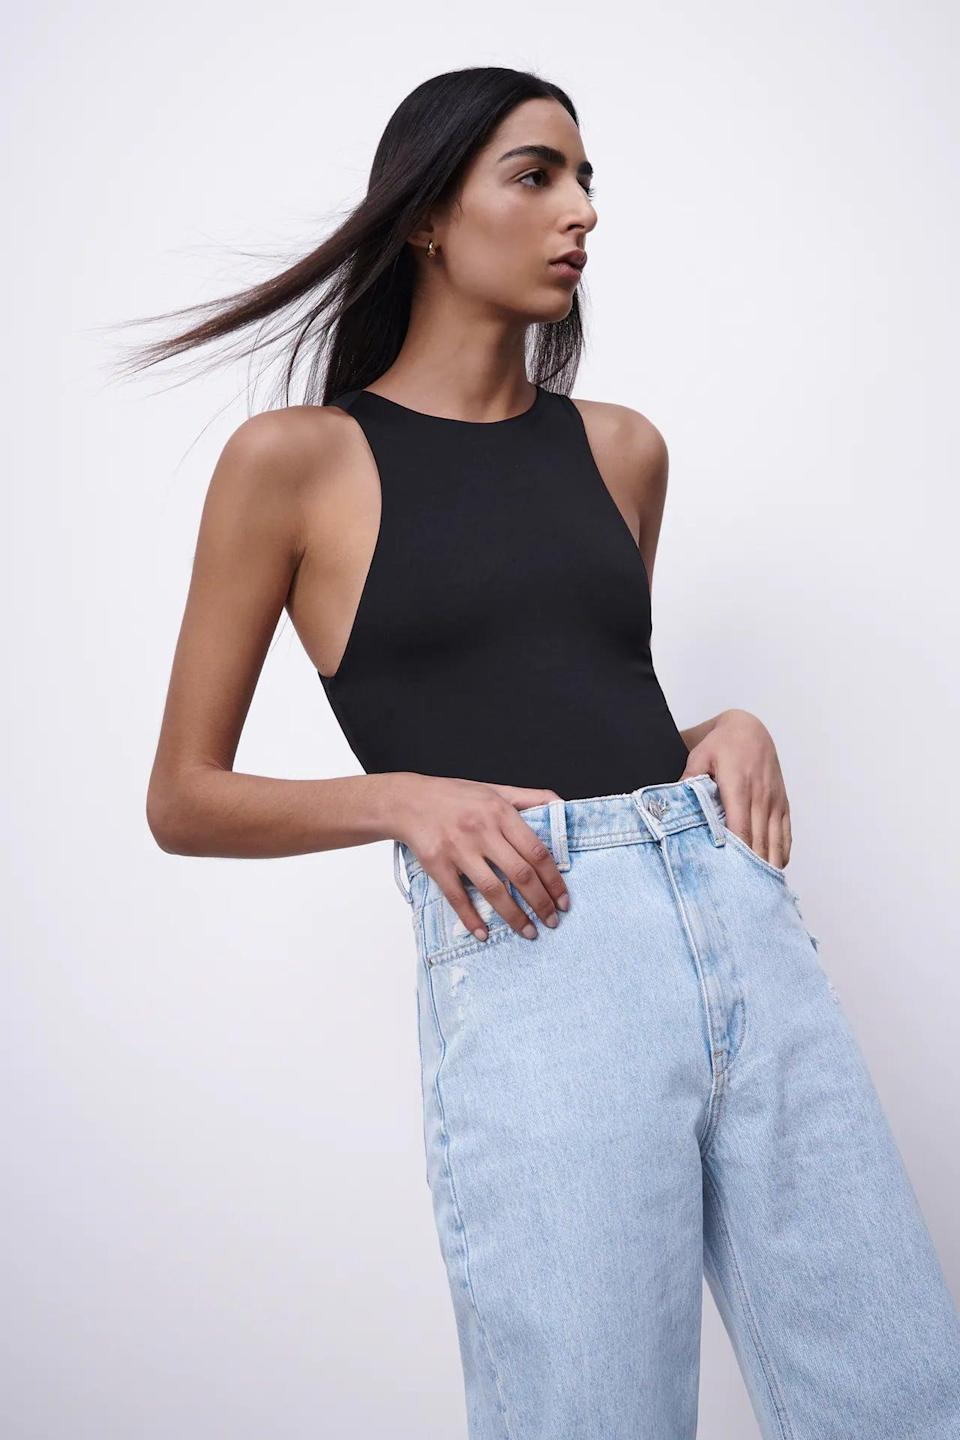 <p>You can't go wrong with this <span>Halterneck Bodysuit</span> ($20). It's easily one of the most versatile pieces to style.</p>